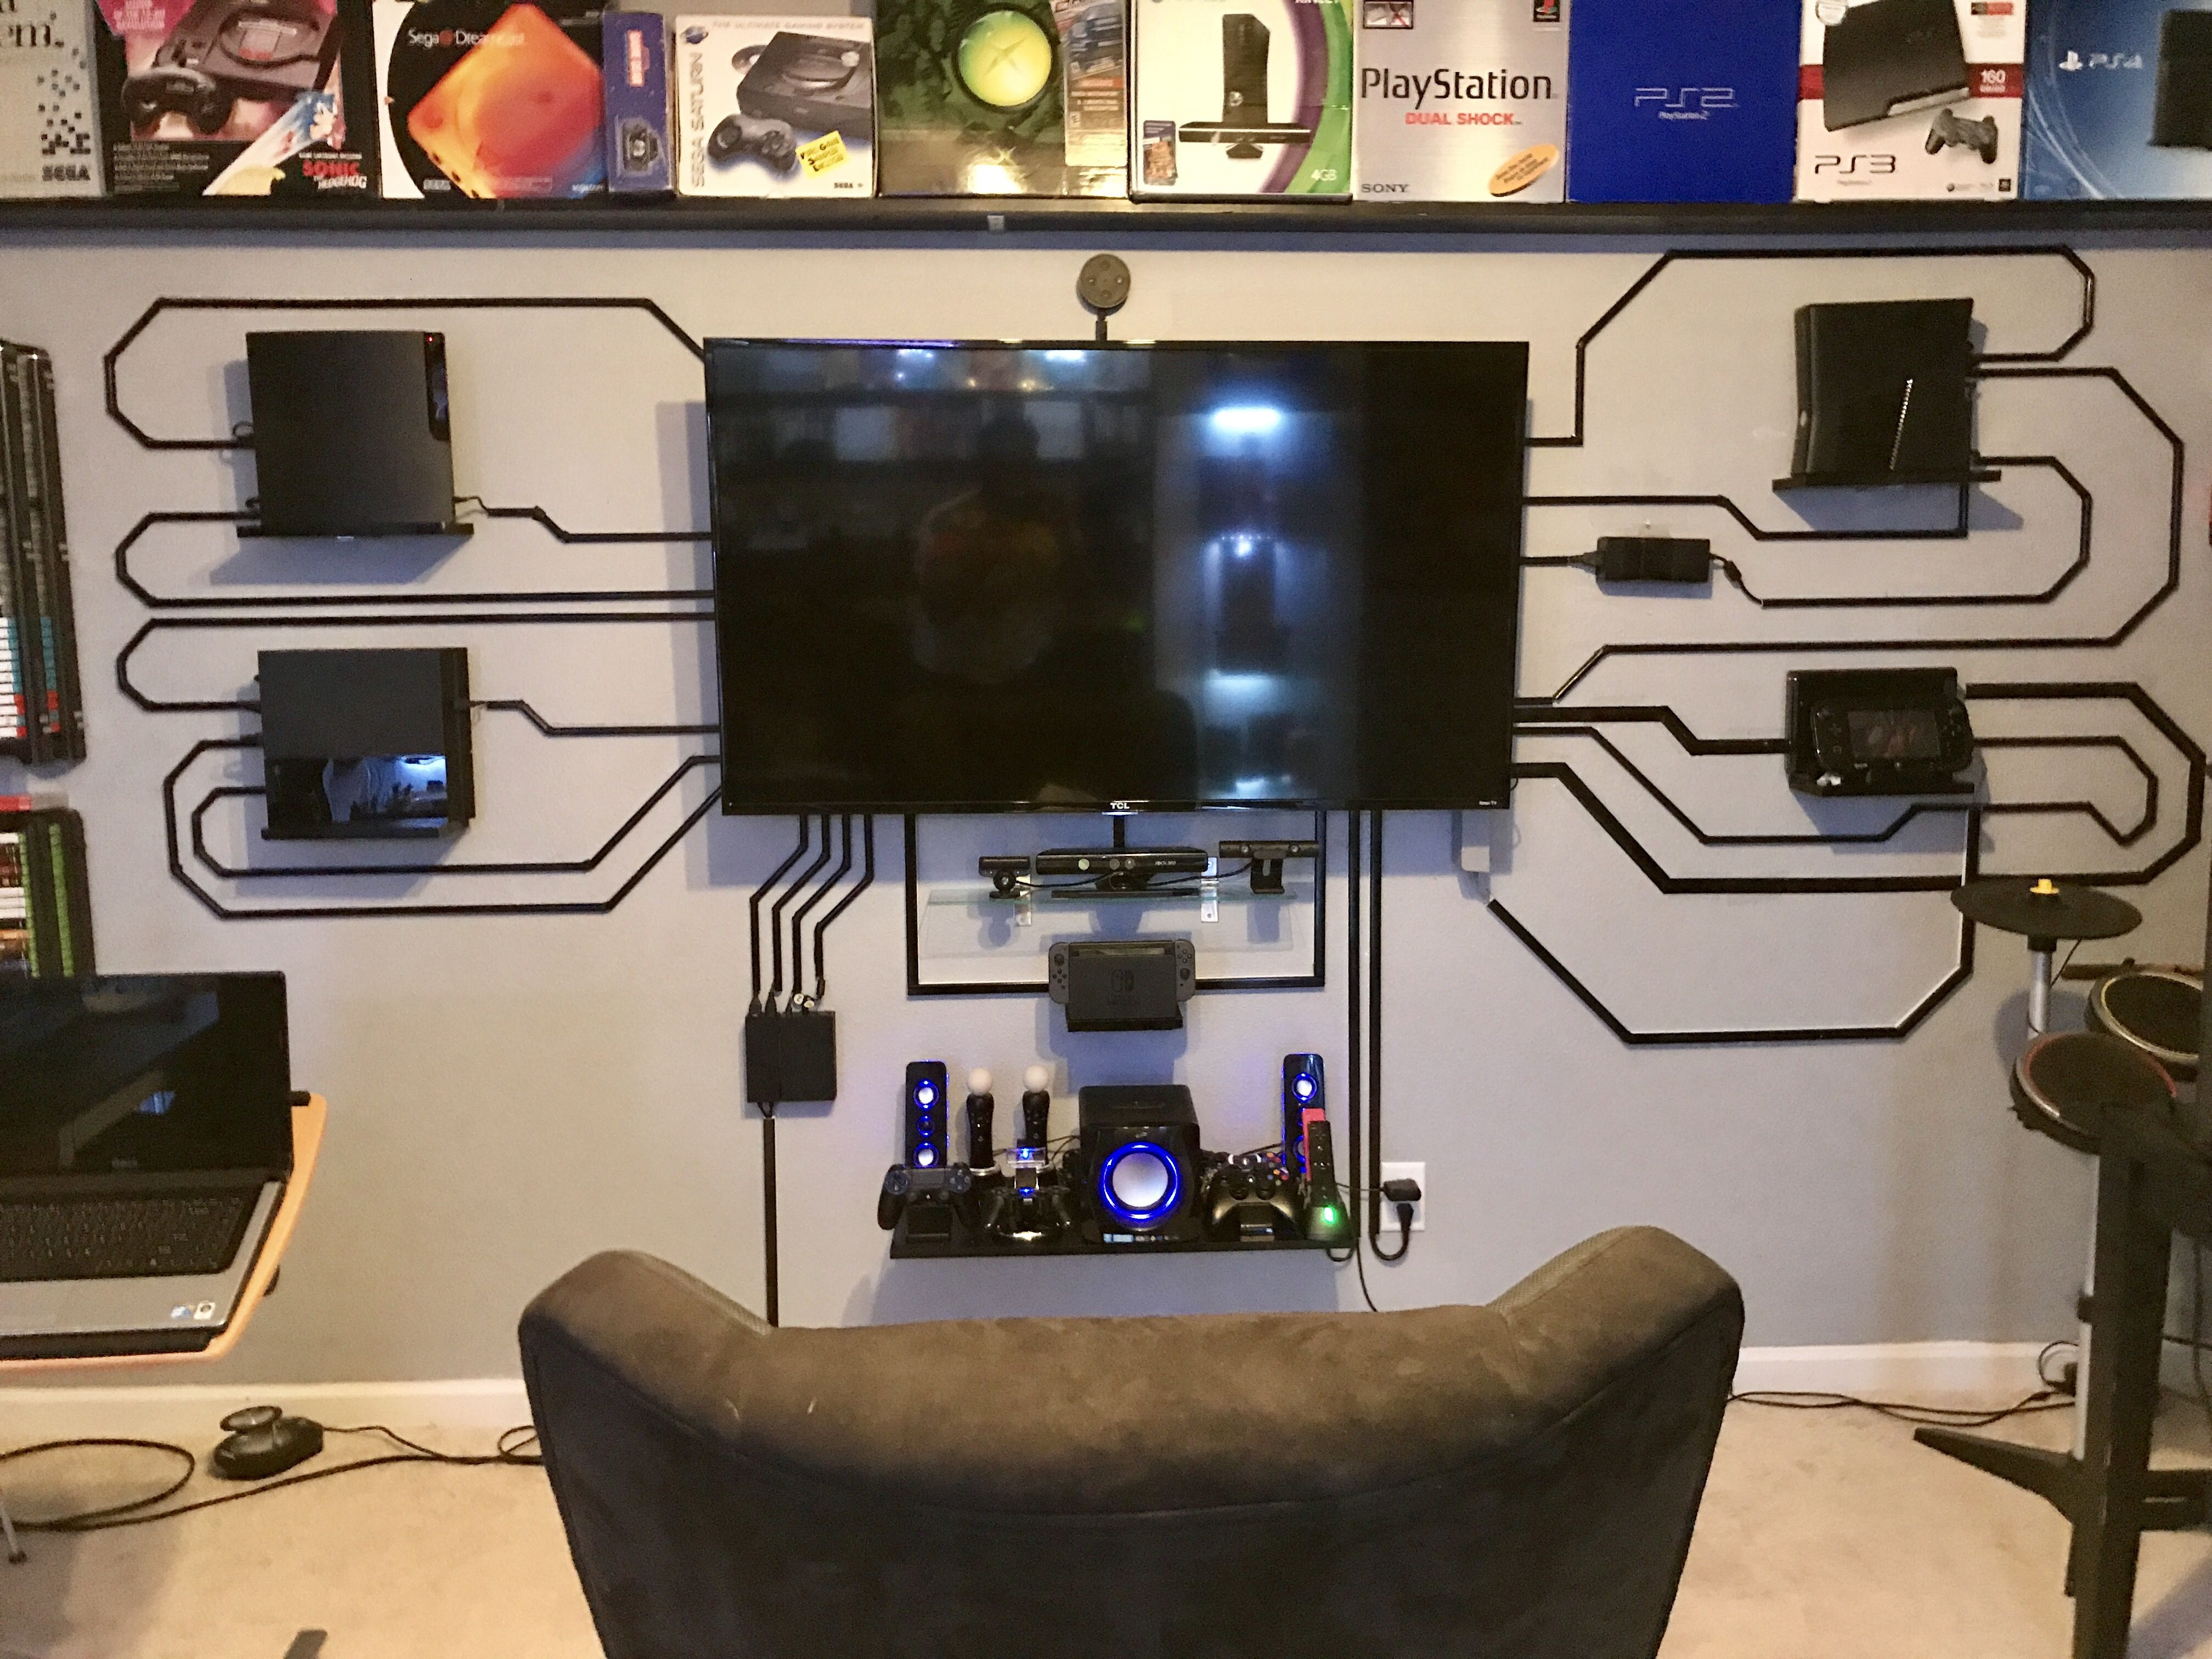 Pin By Ricardo Paoli On Roga Ideas Game Room Game Room Design